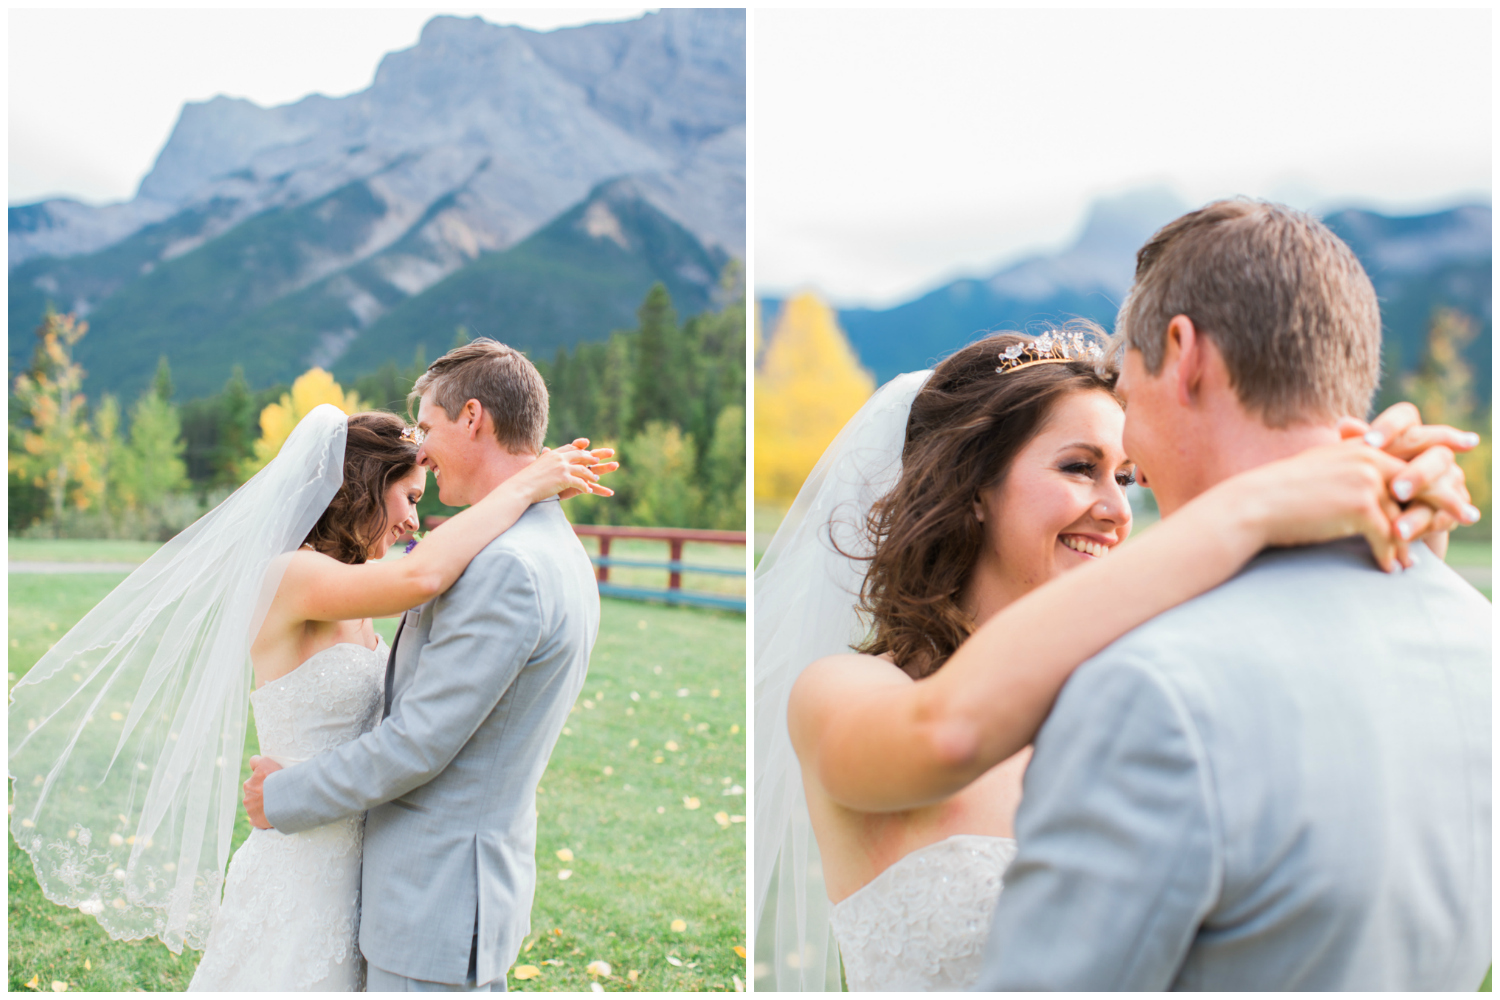 Canmore Wedding Photographer Quarry Lake Park Canmore Nordic Centre - 43